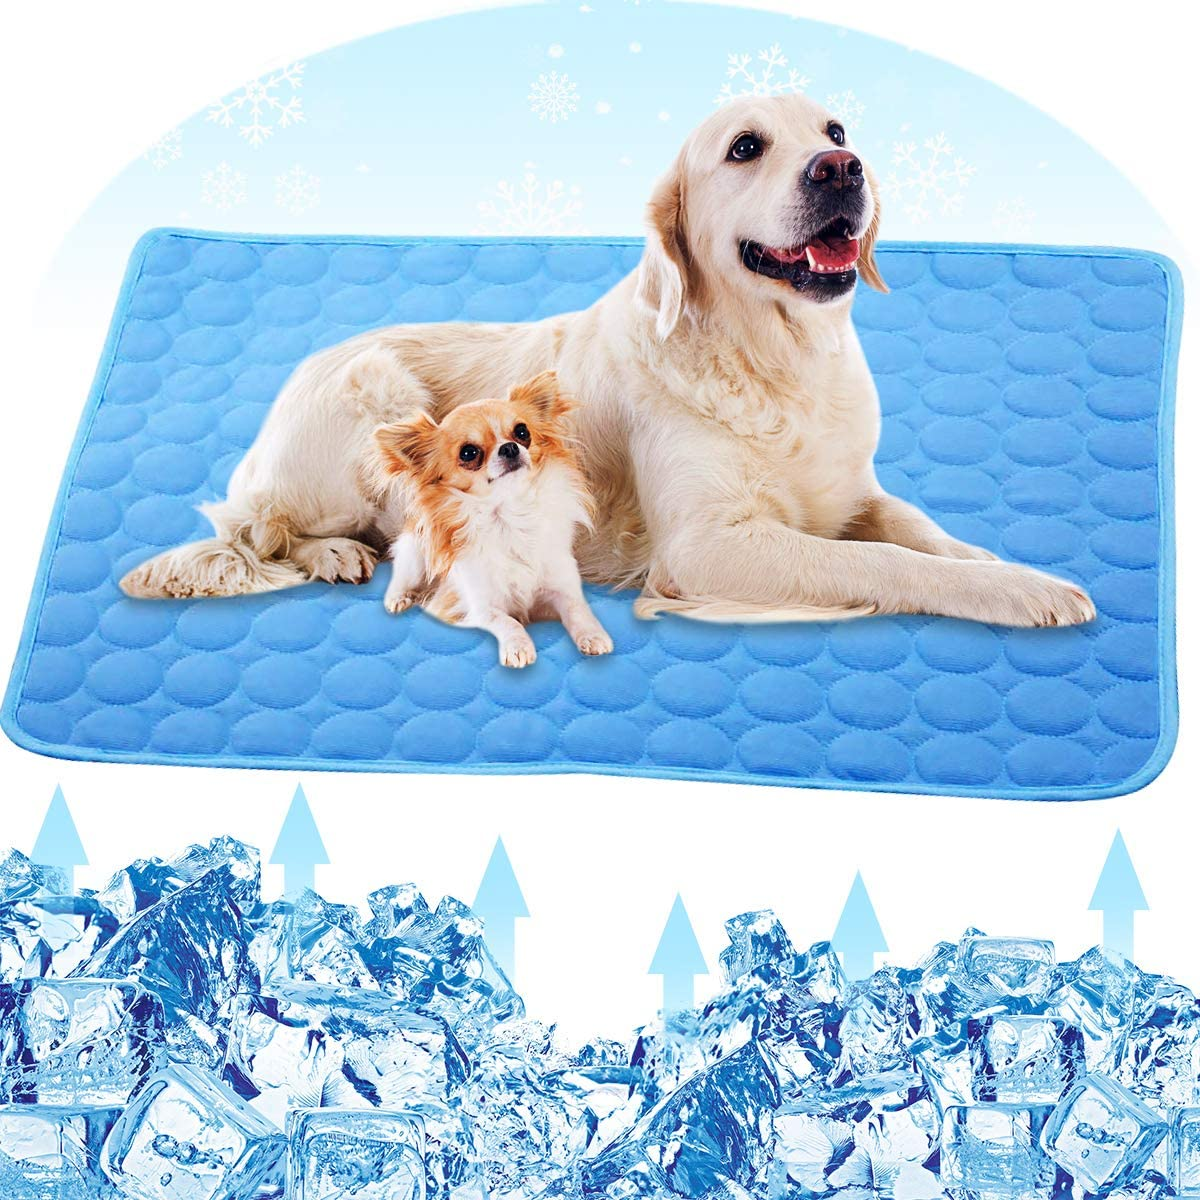 PETPLUS Dog Cooling Mat, Pet Cooling Pads for Dogs - Dog Mats Dog Accessories Dog Cooling Vest to Help Your Pet Stay Cool - Avoid Overheating, Ideal for Home & Travel